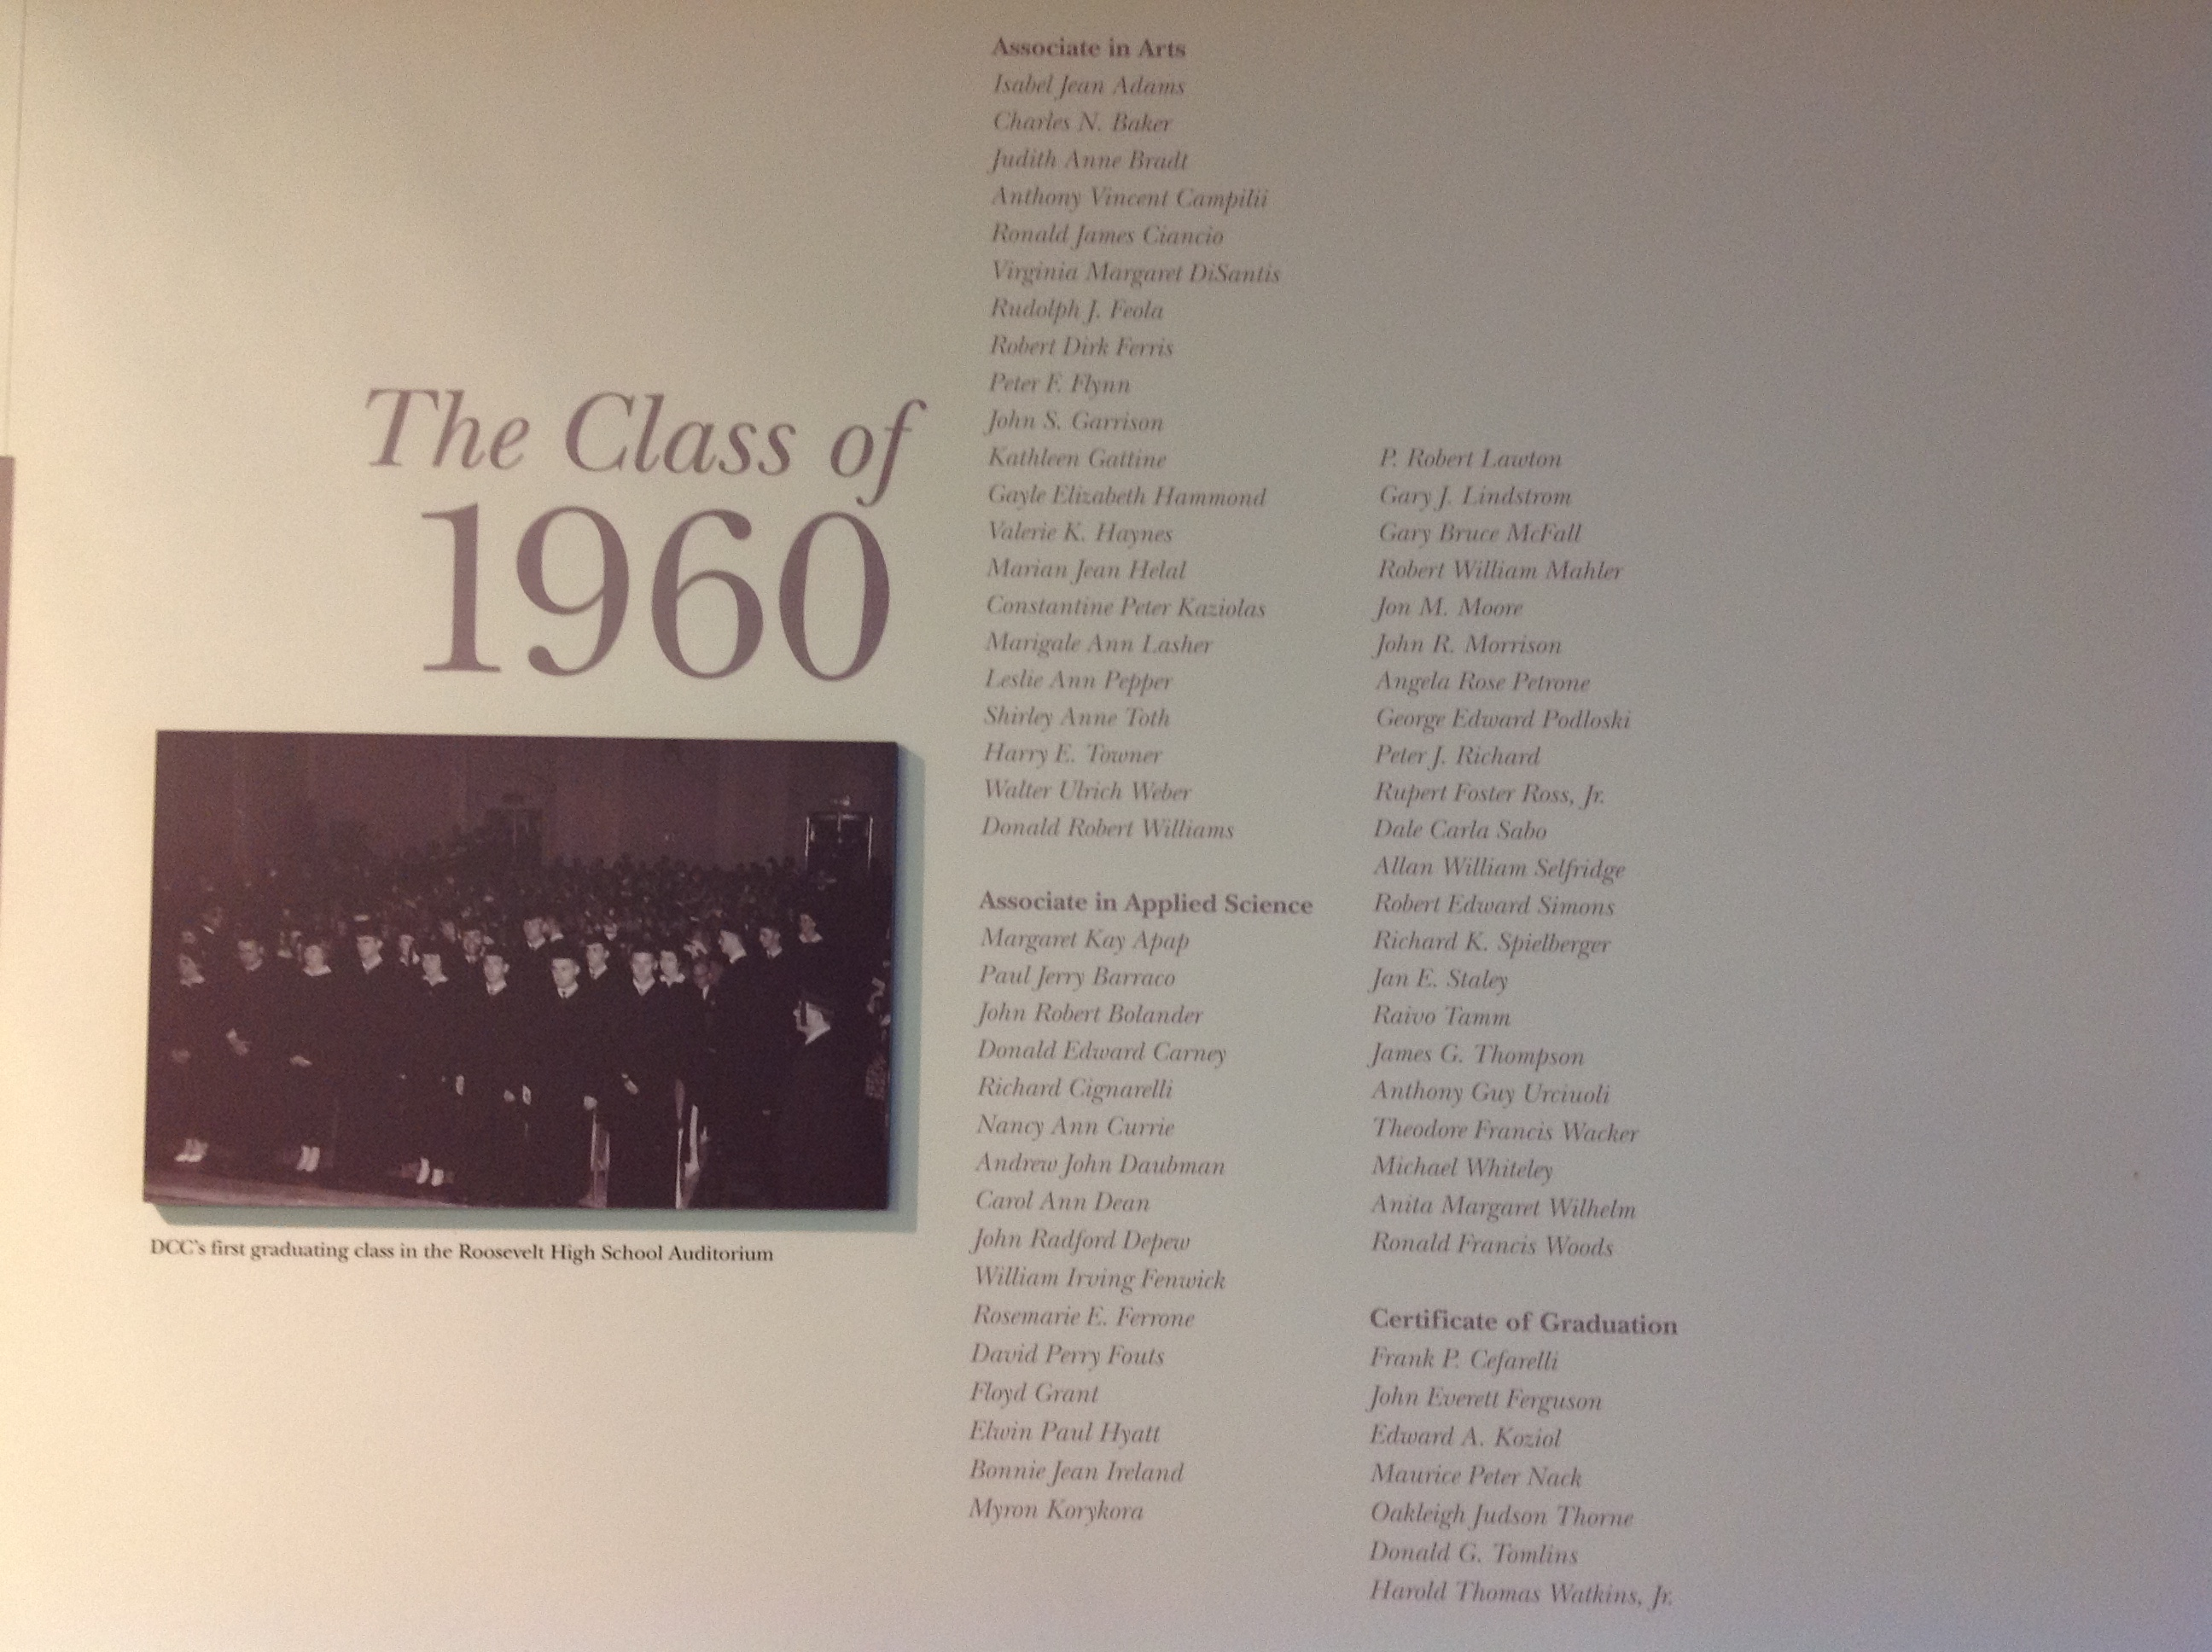 The Class of 1960